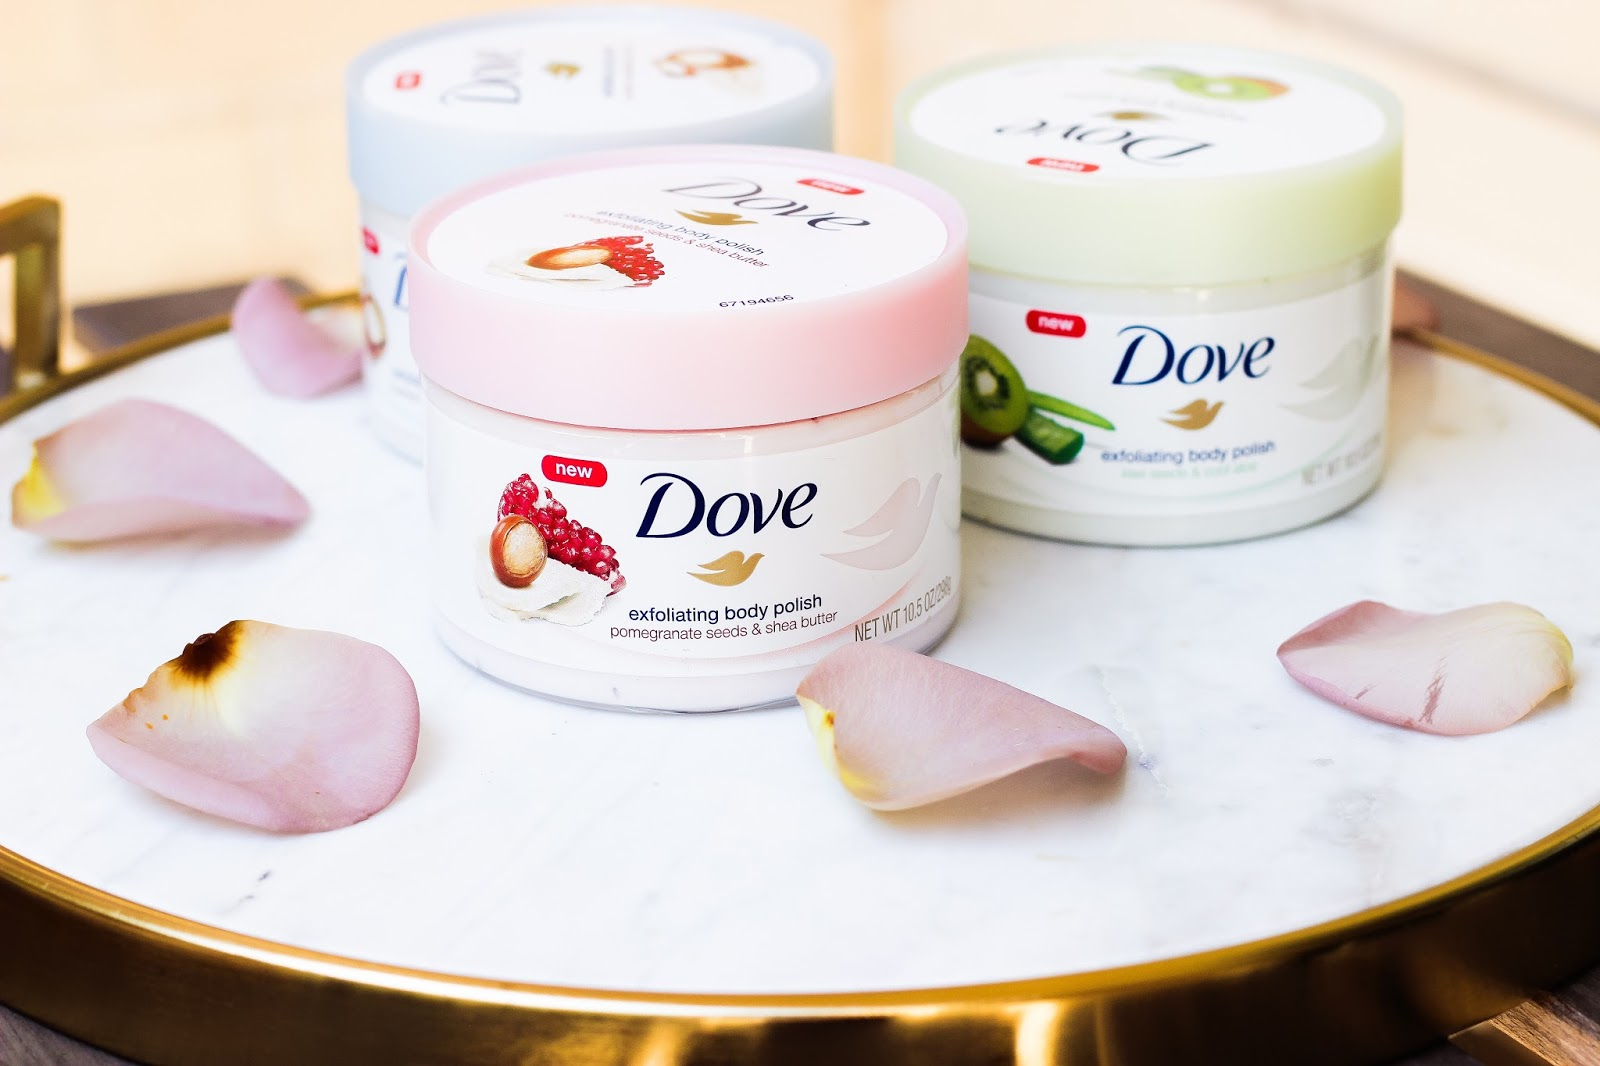 Sylan Beauty Be Date Ready With The Ultimate Self Care Body Polish By Dove